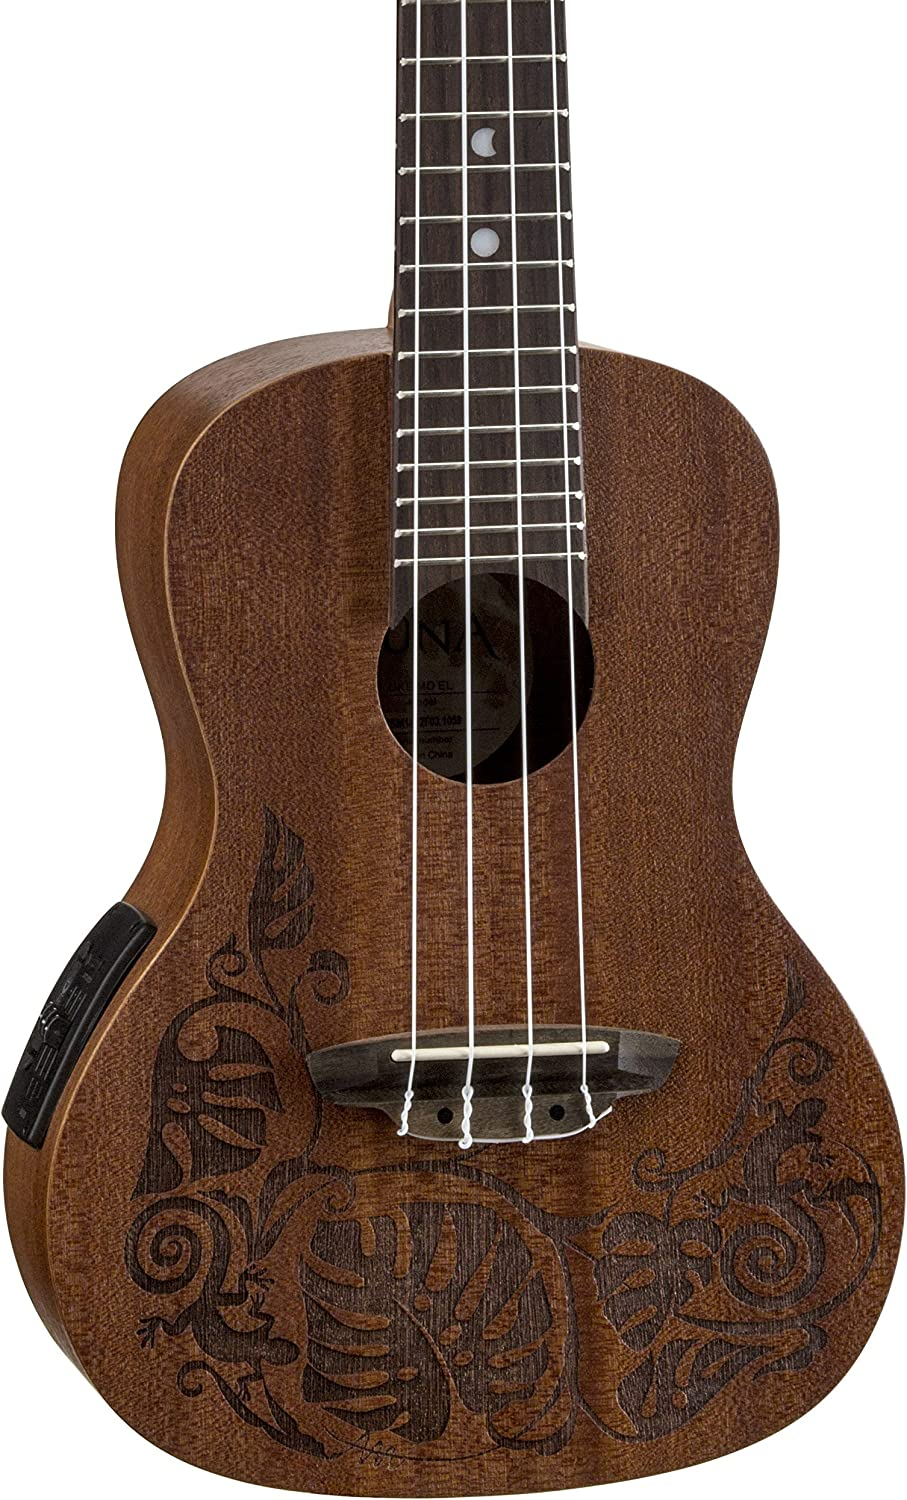 Luna Mo'o Mahogany Acoustic Electric with Concert Al sold out. Bombing new work Ukulele Lizard